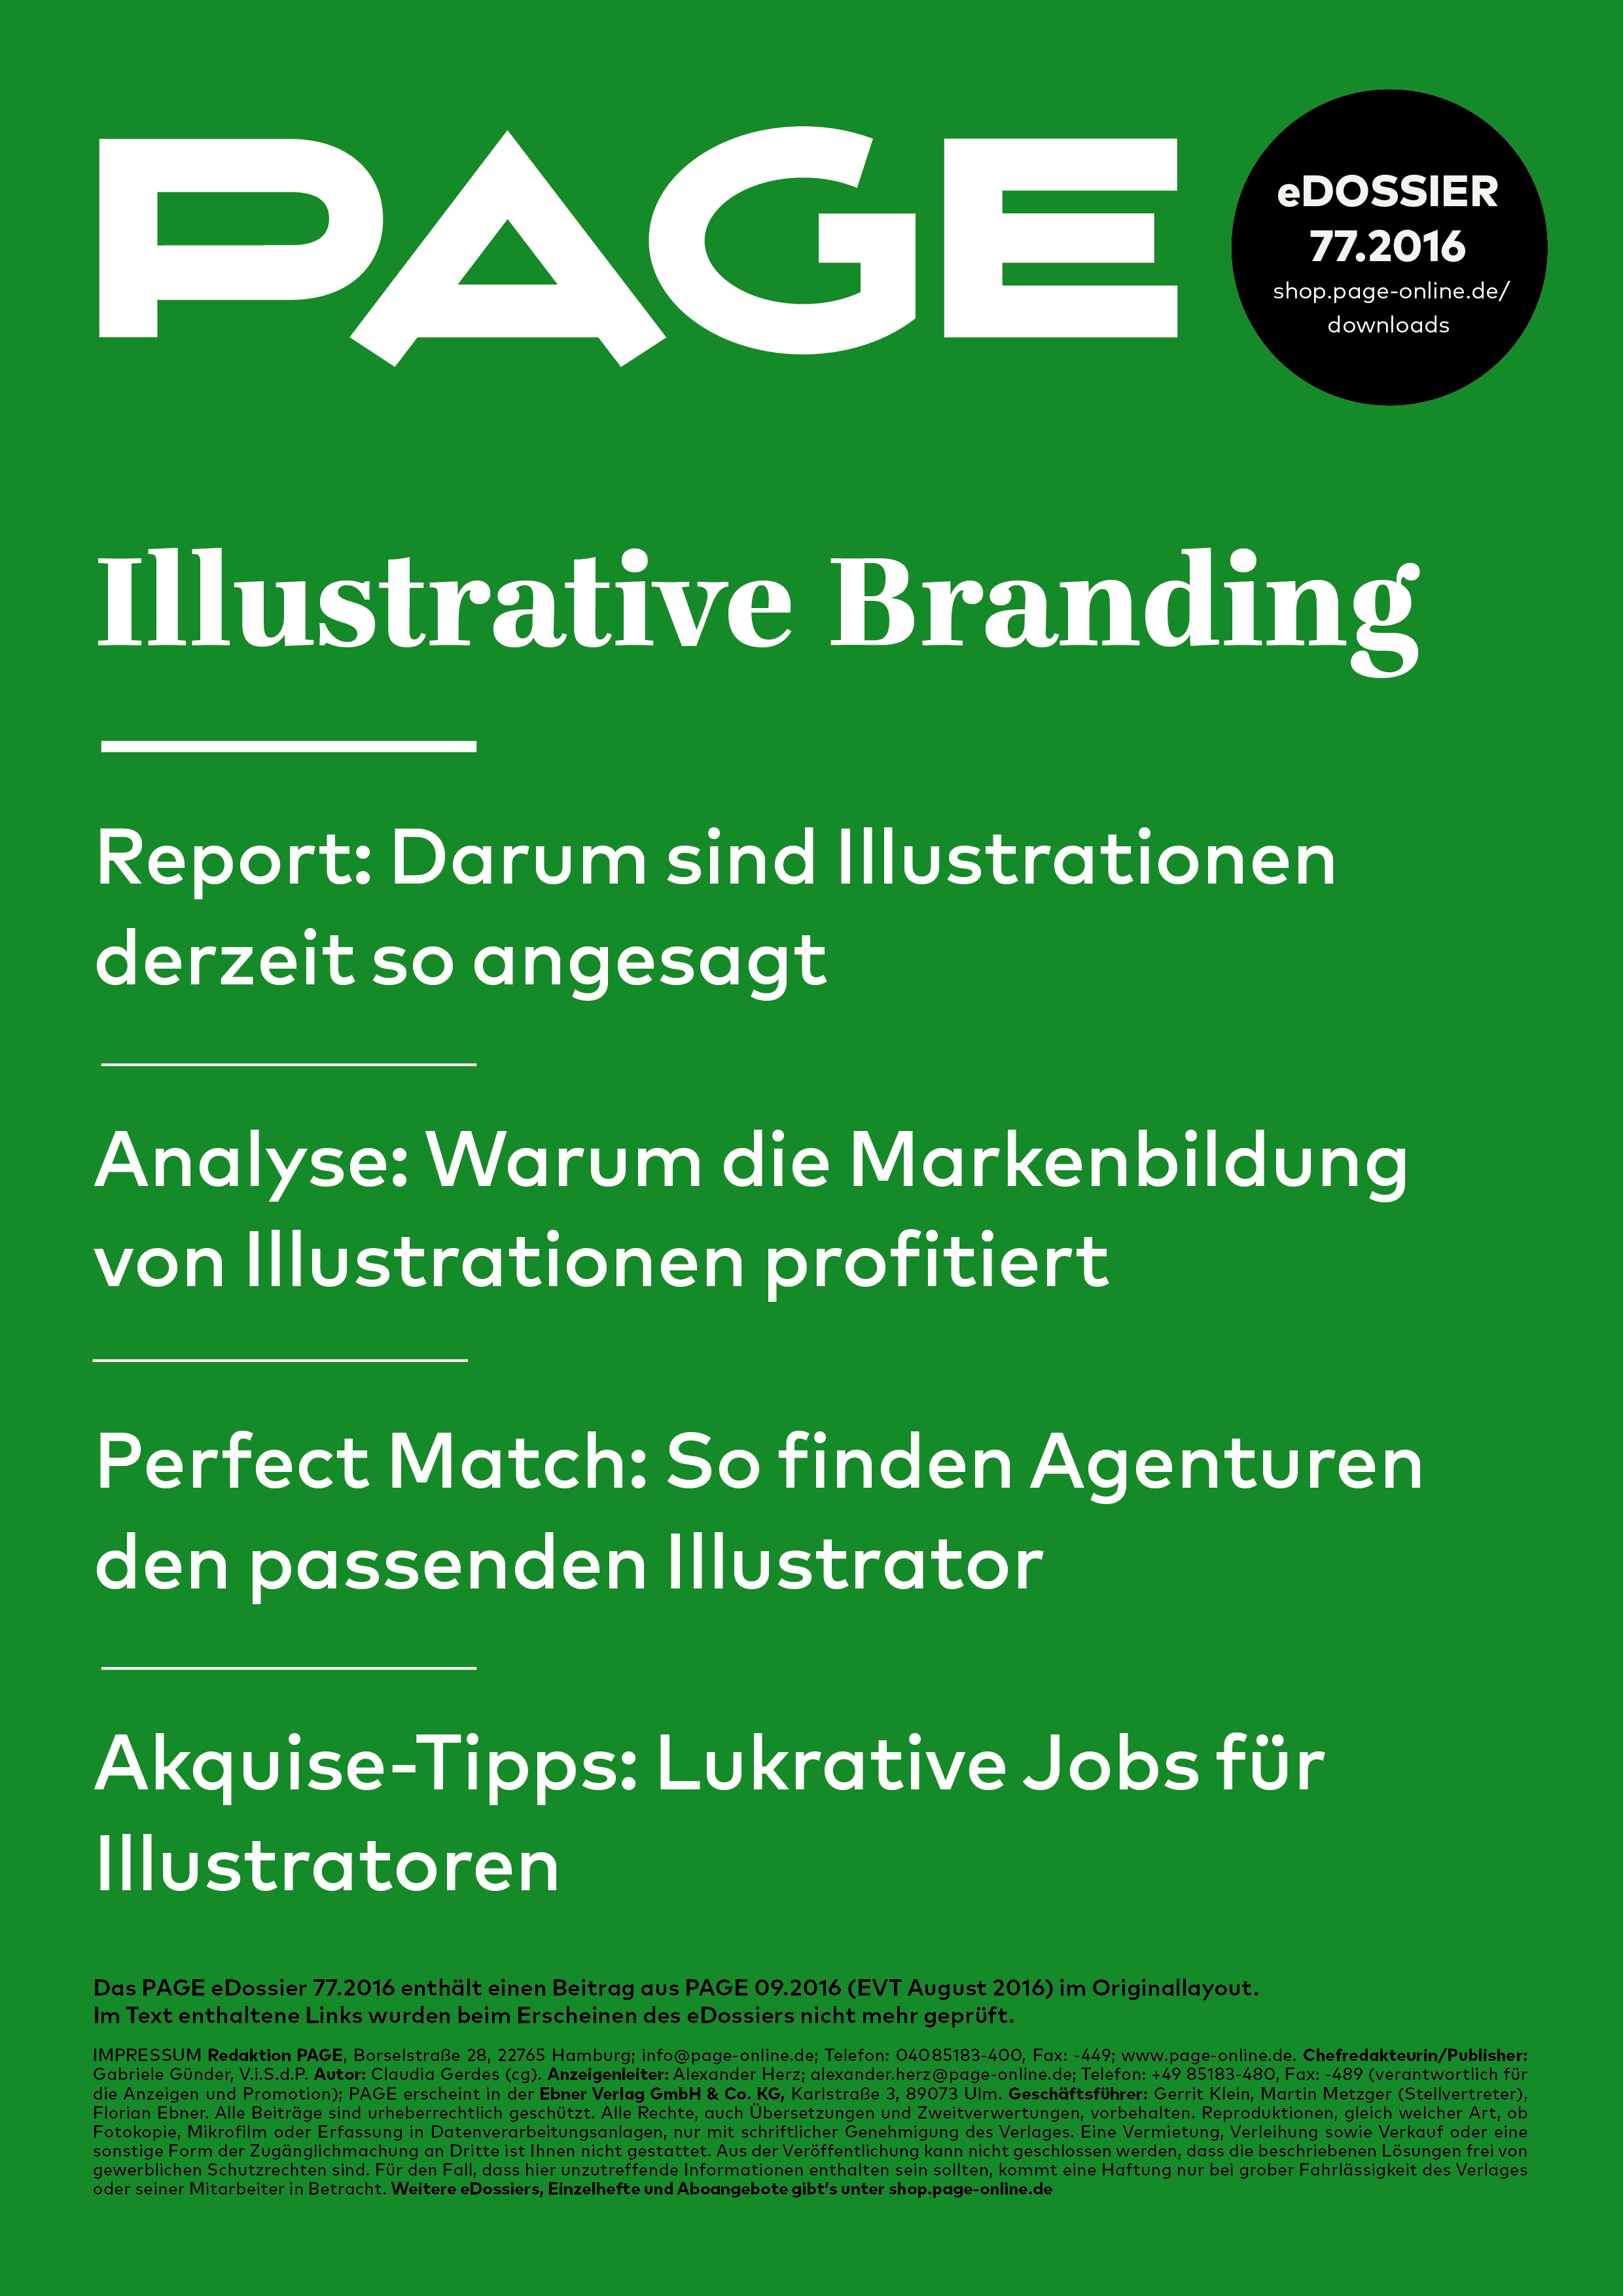 Illustration meets Brand Design: So funktioniert der Werbetrend